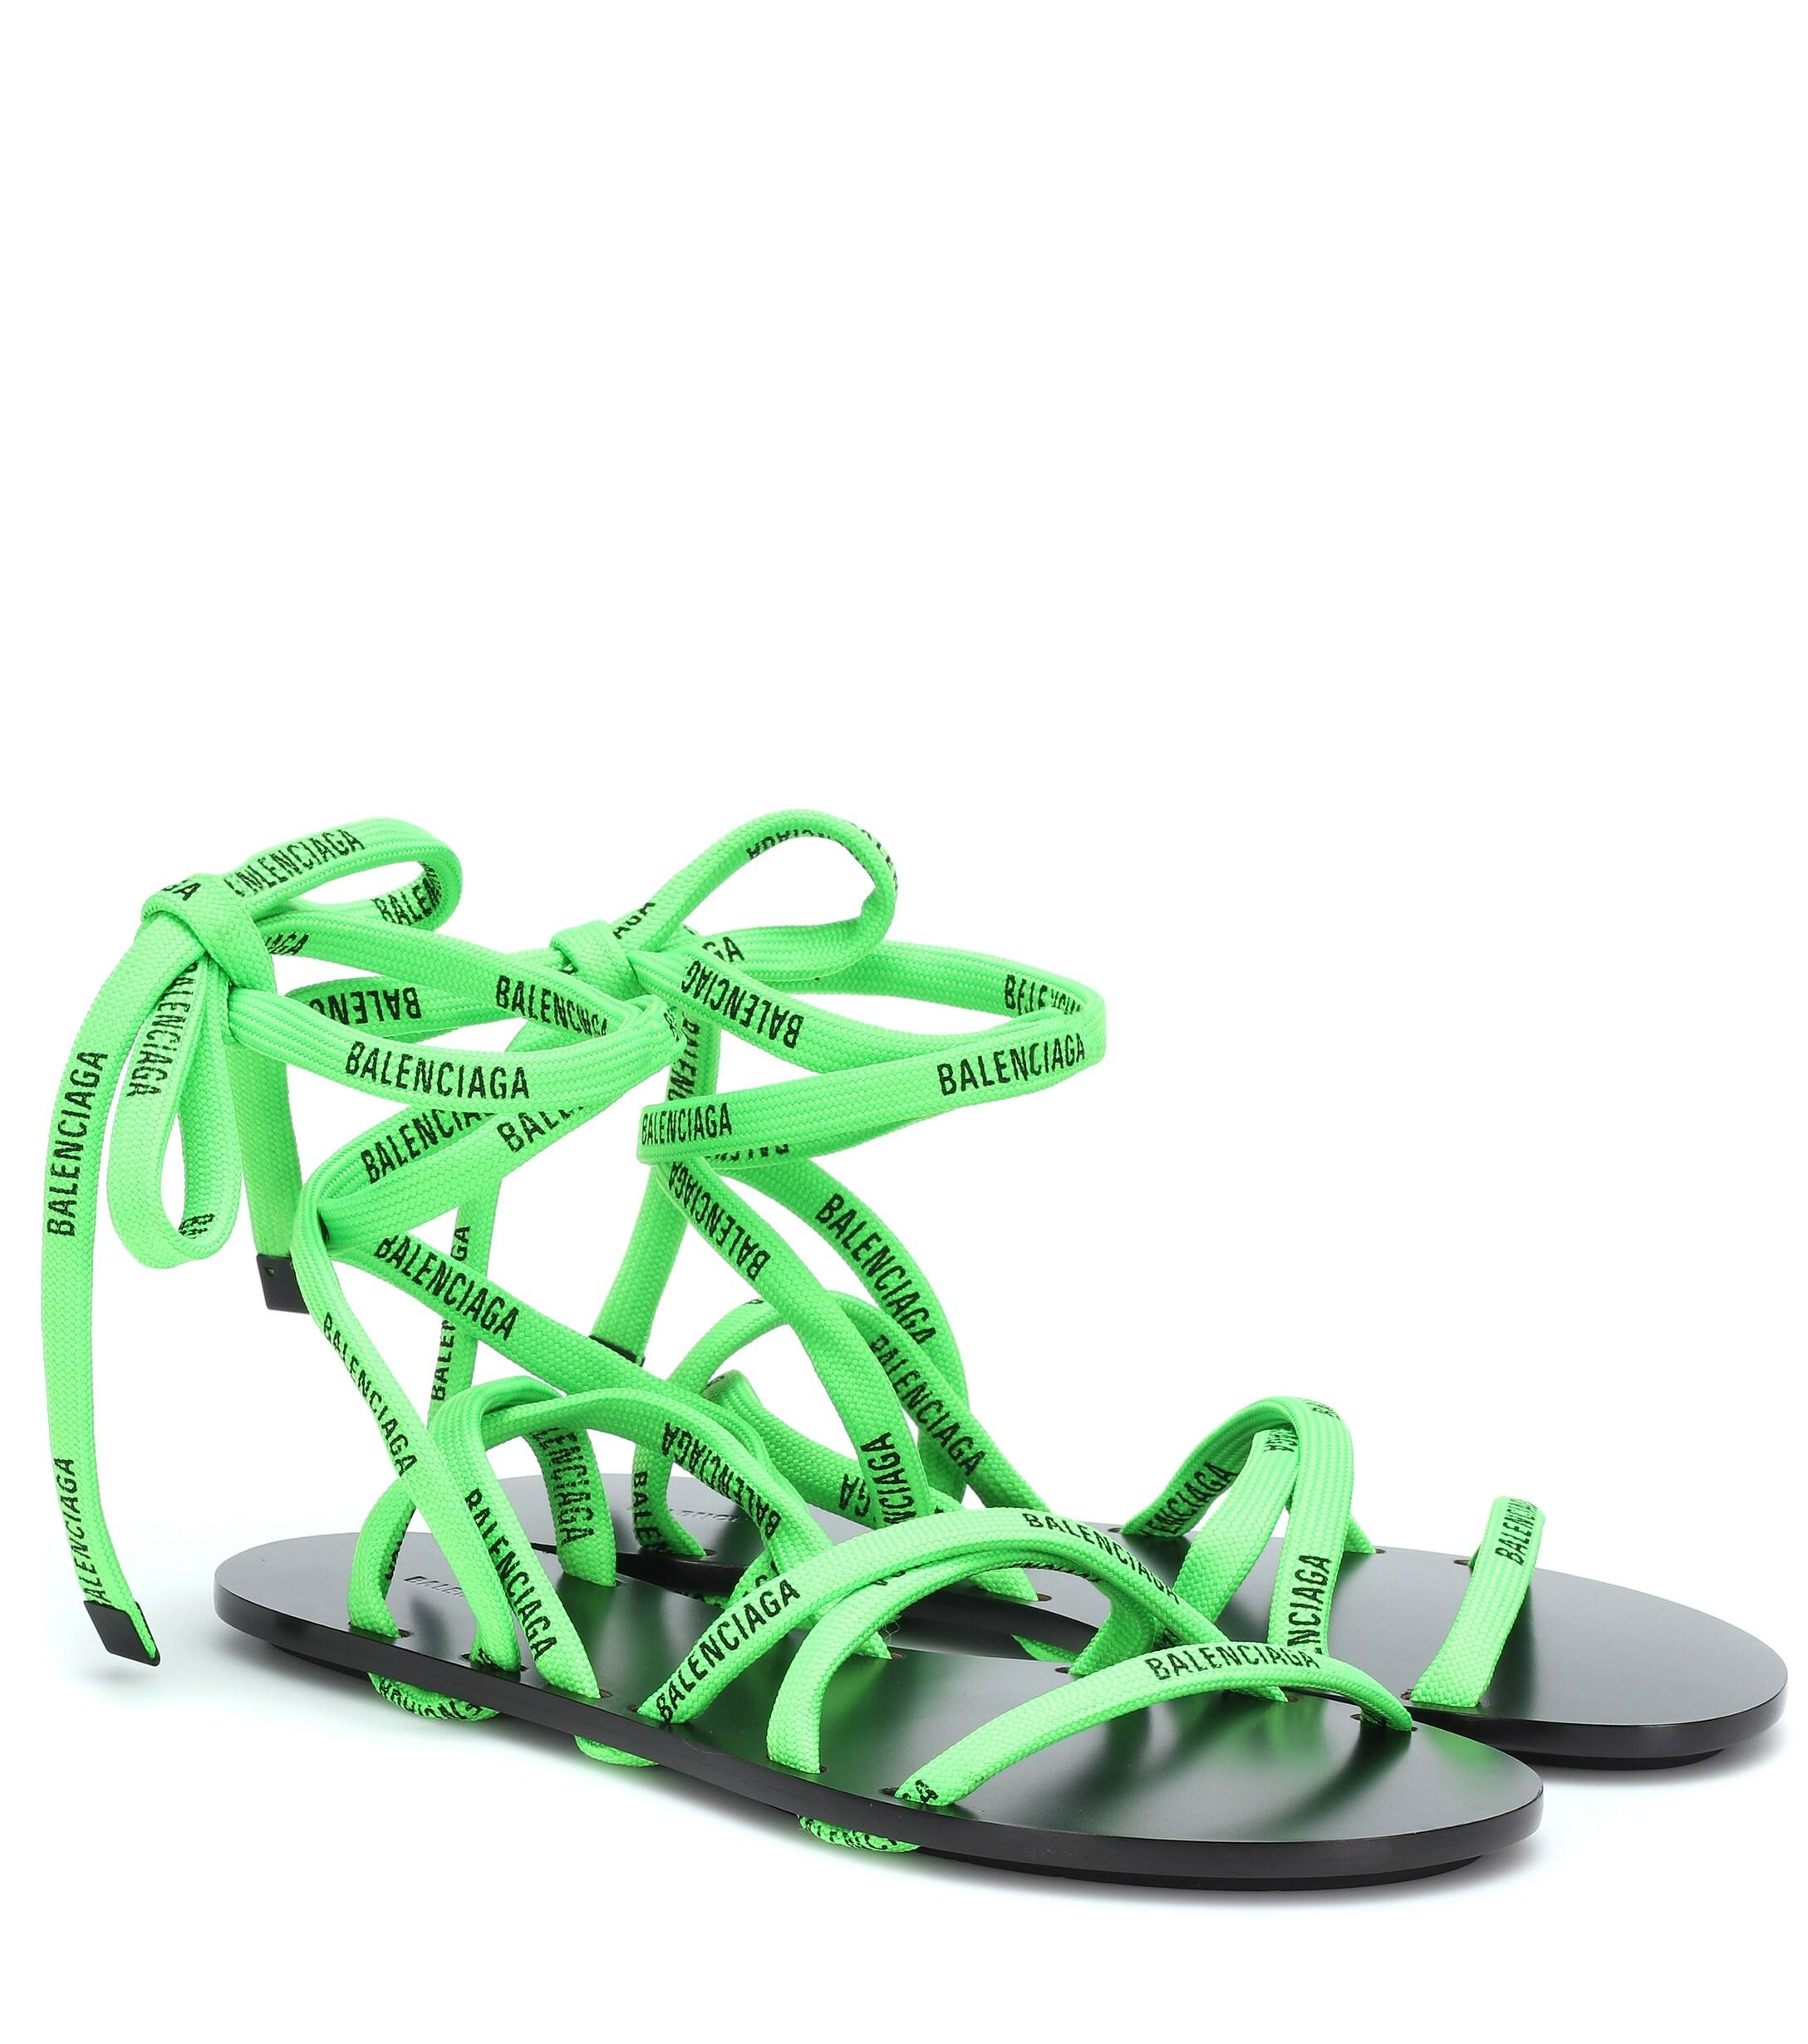 Balenciaga Lace-up Sandals in Green - Lyst